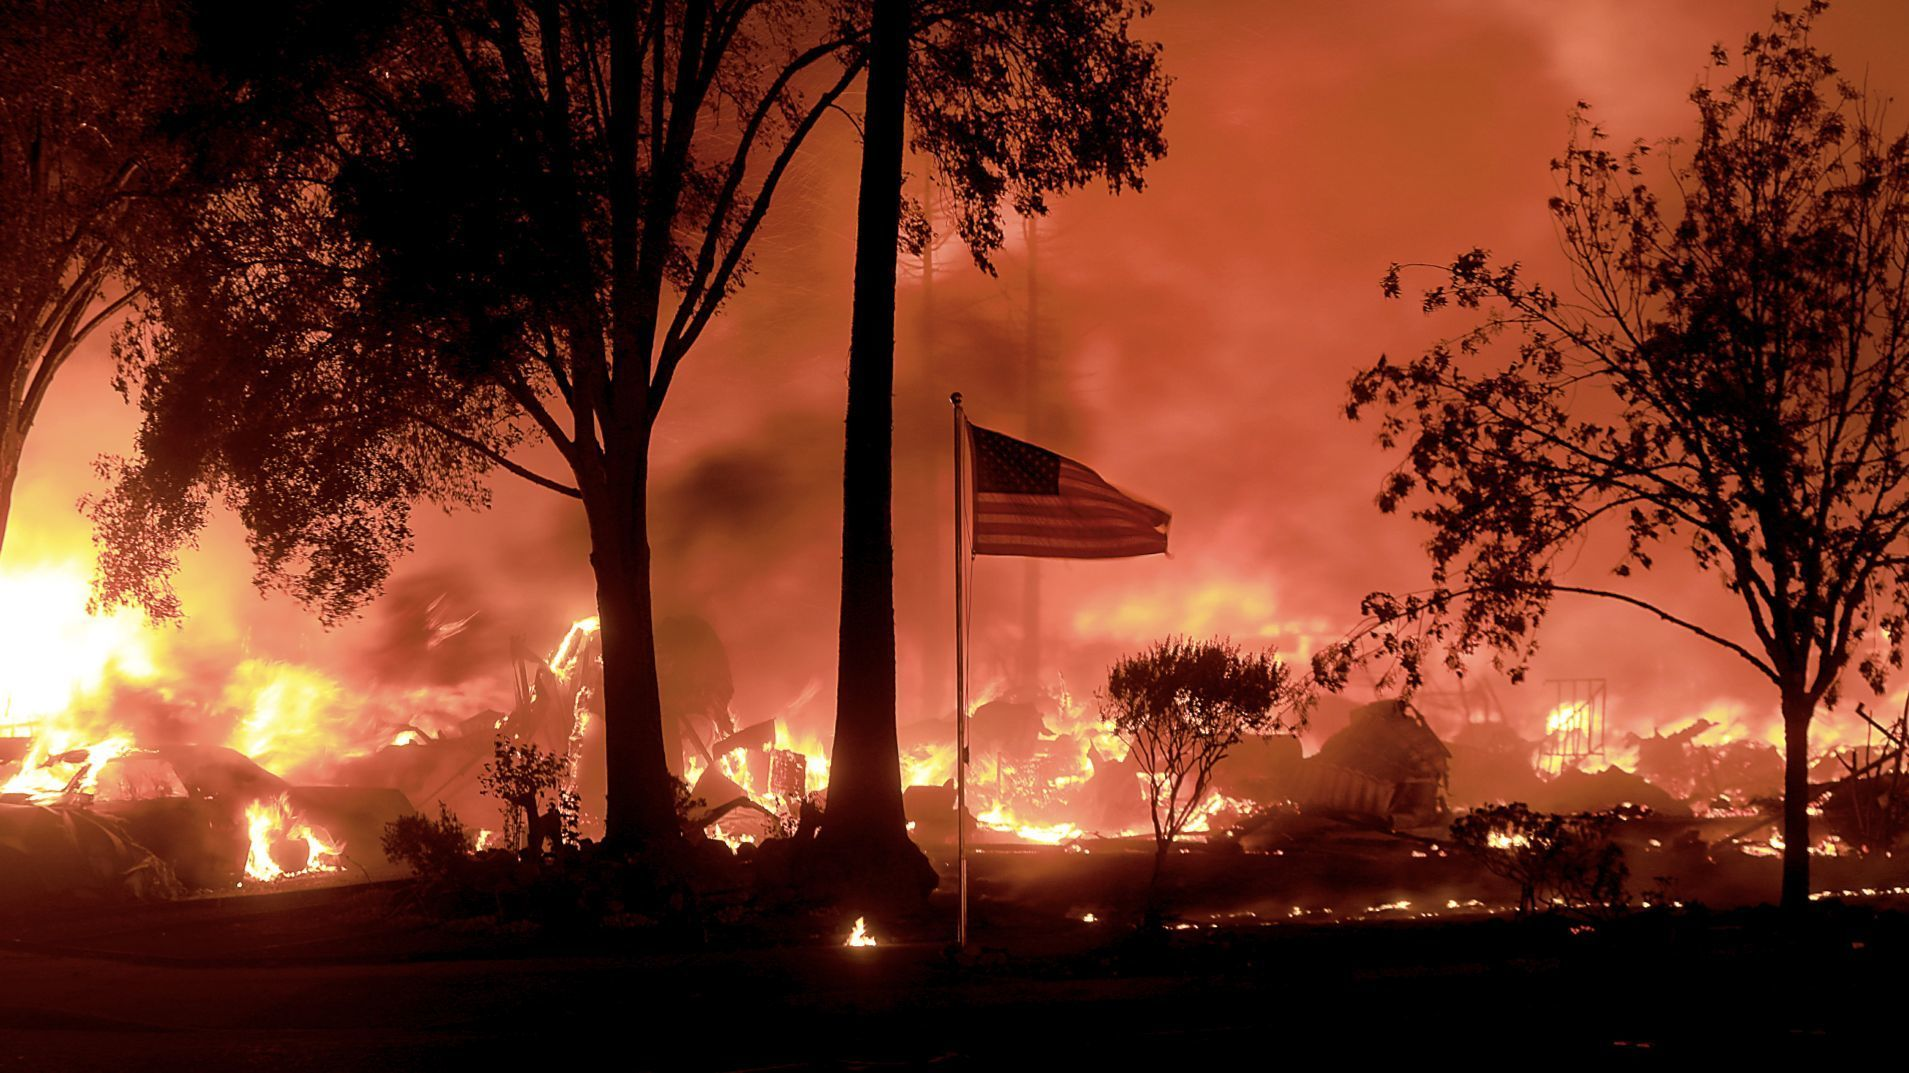 An American flag still flies as structures burn in Coffey Park in Santa Rosa.